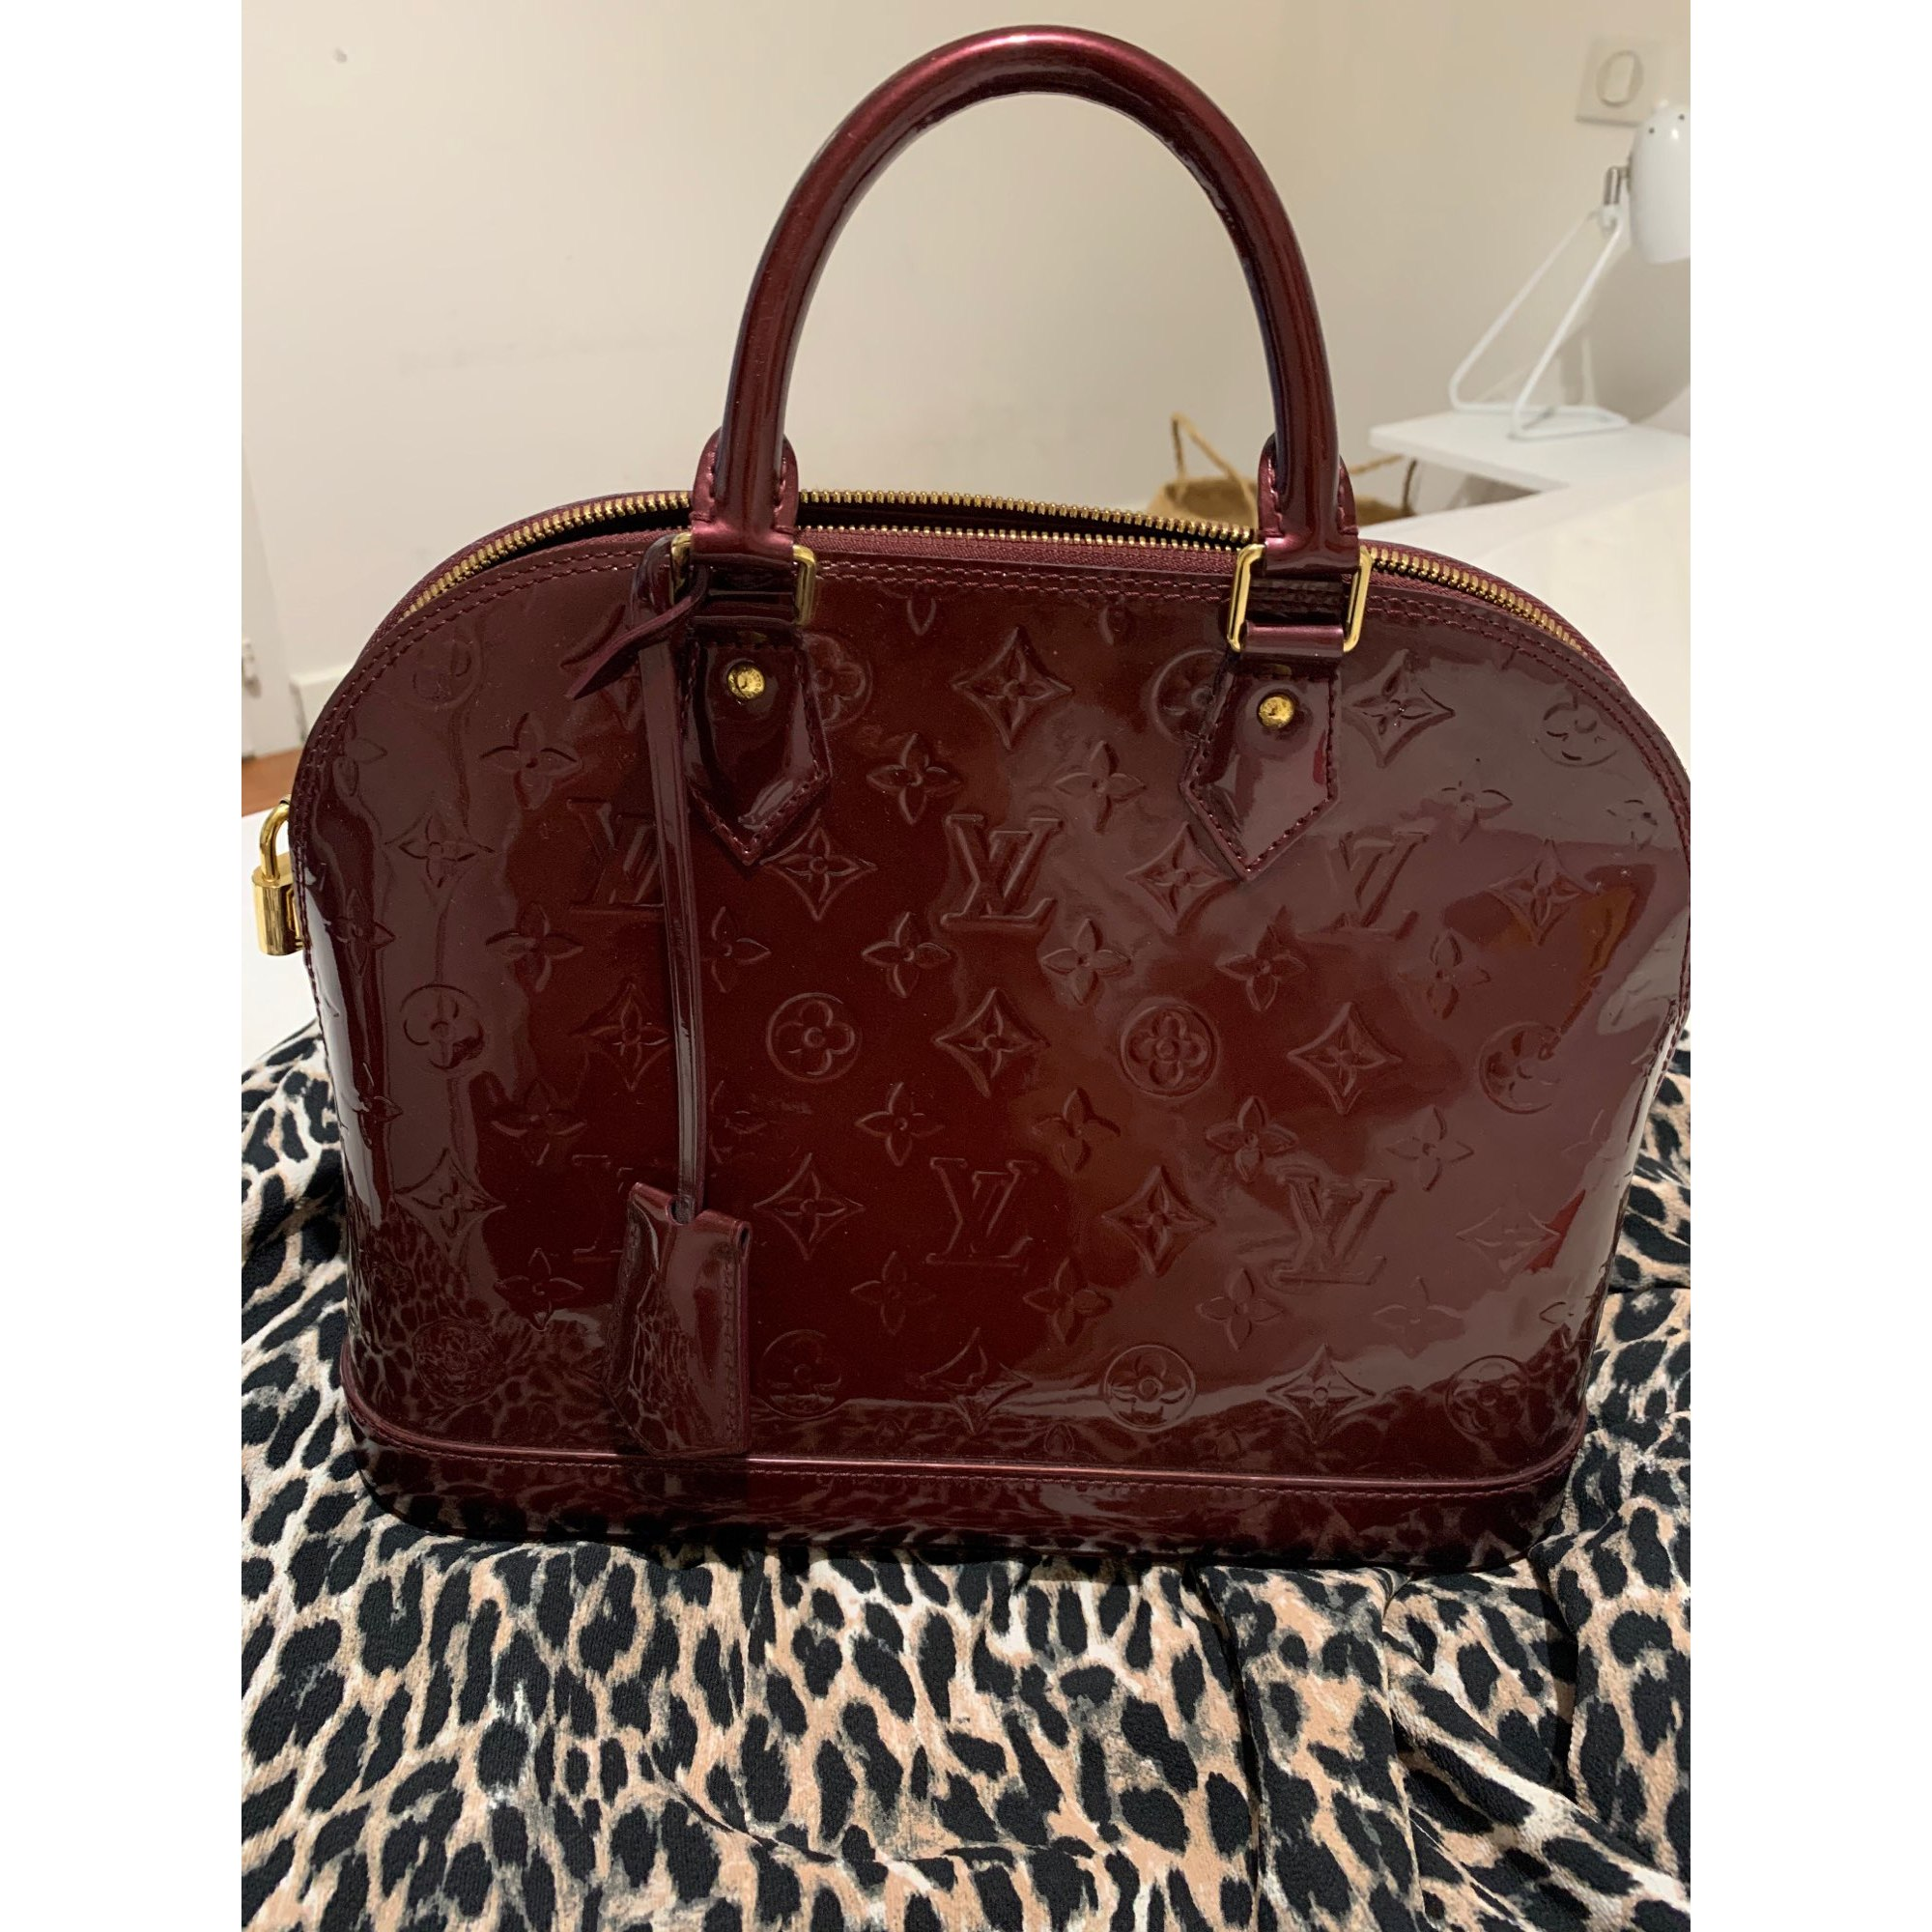 Sac à main en cuir LOUIS VUITTON Alma Rouge, bordeaux